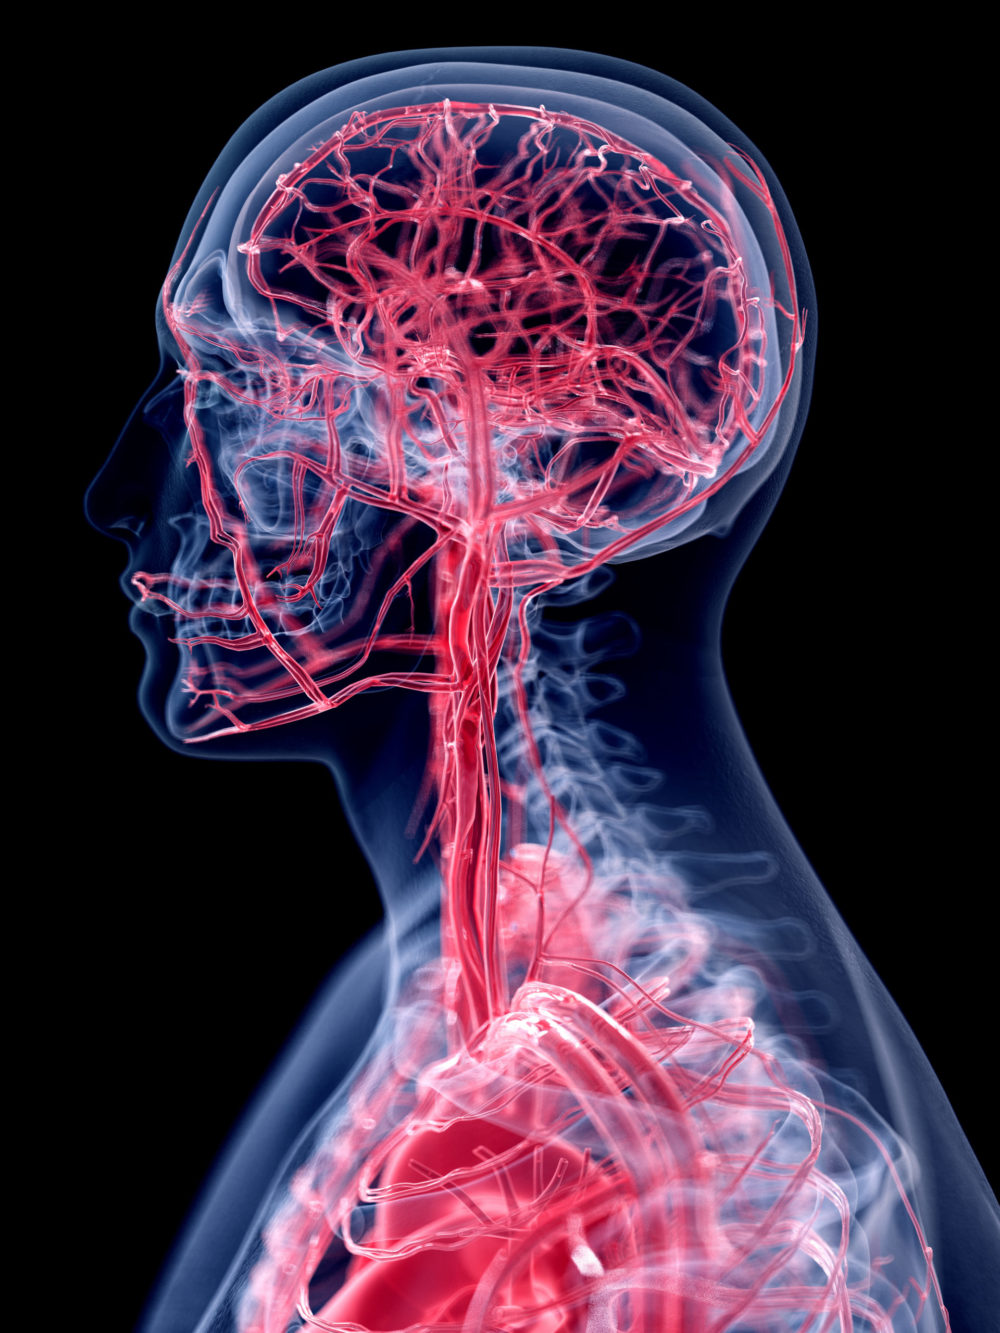 The first head joint, between the base of the skull and the first cervical vertebra is called the atlas.